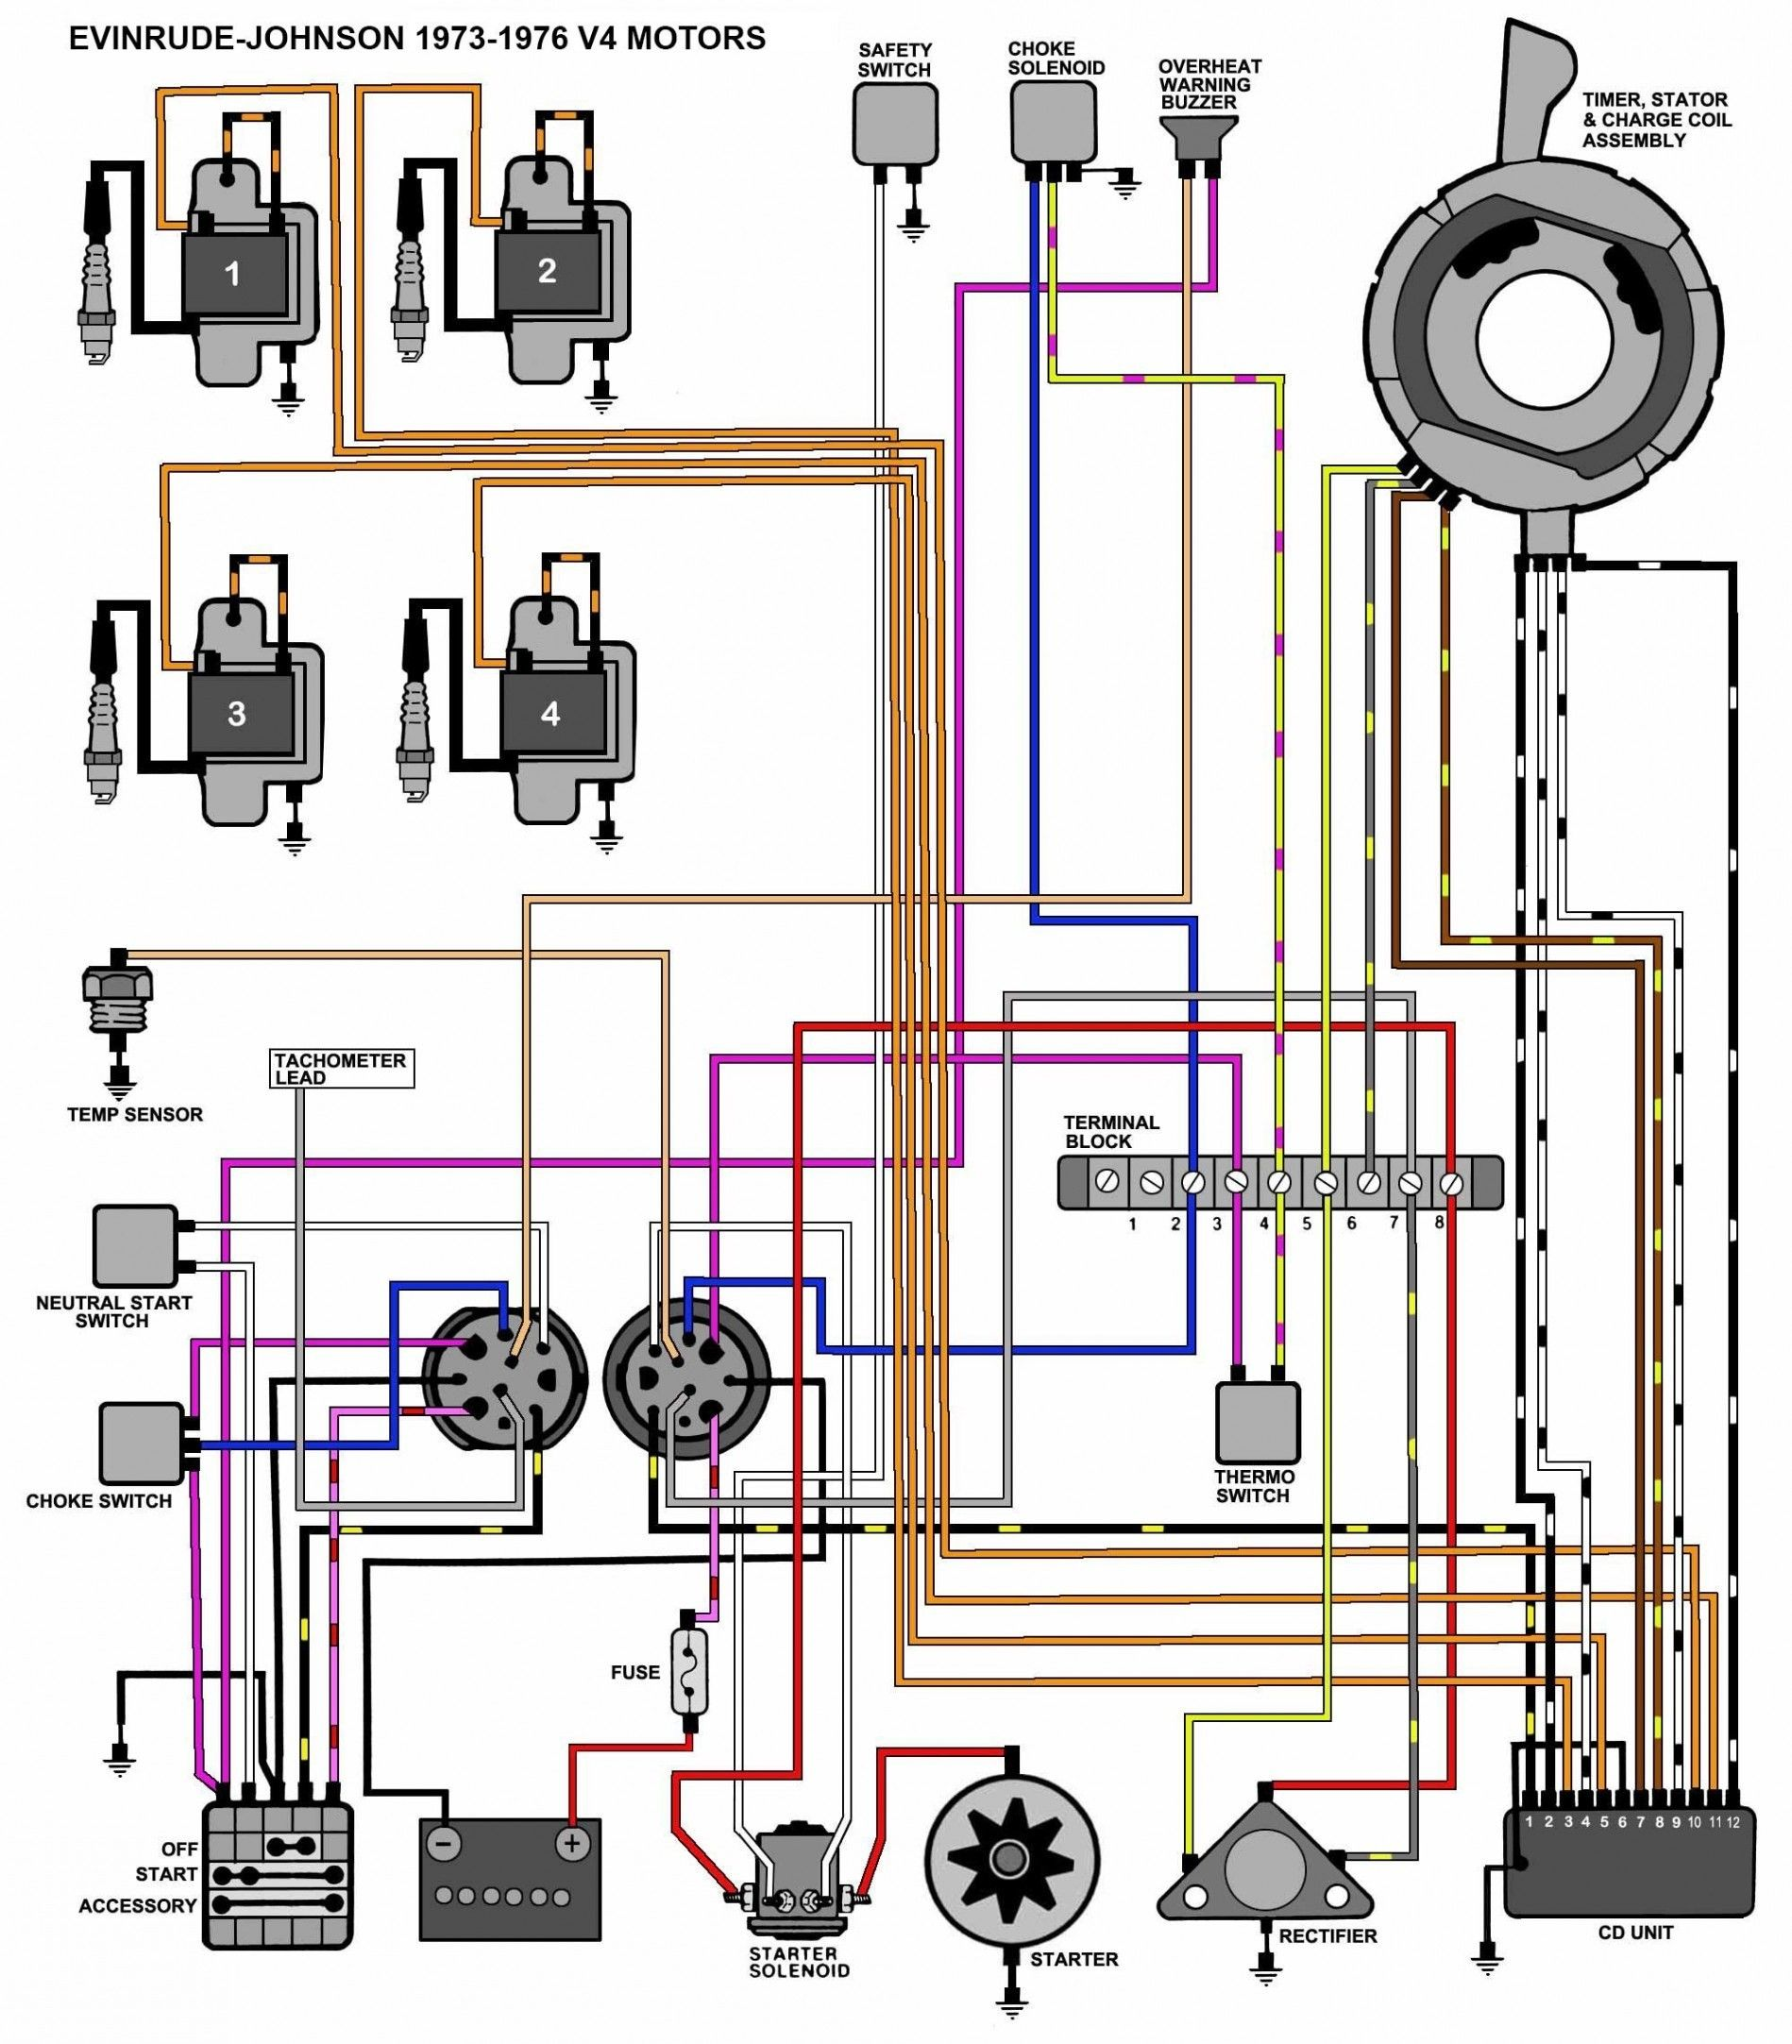 DIAGRAM] 3 Wire Distributor Wiring Diagram Jet Boat FULL Version HD Quality Jet  Boat - NATIONALDIAGRAMS.XEELBEE.FRXeelbee